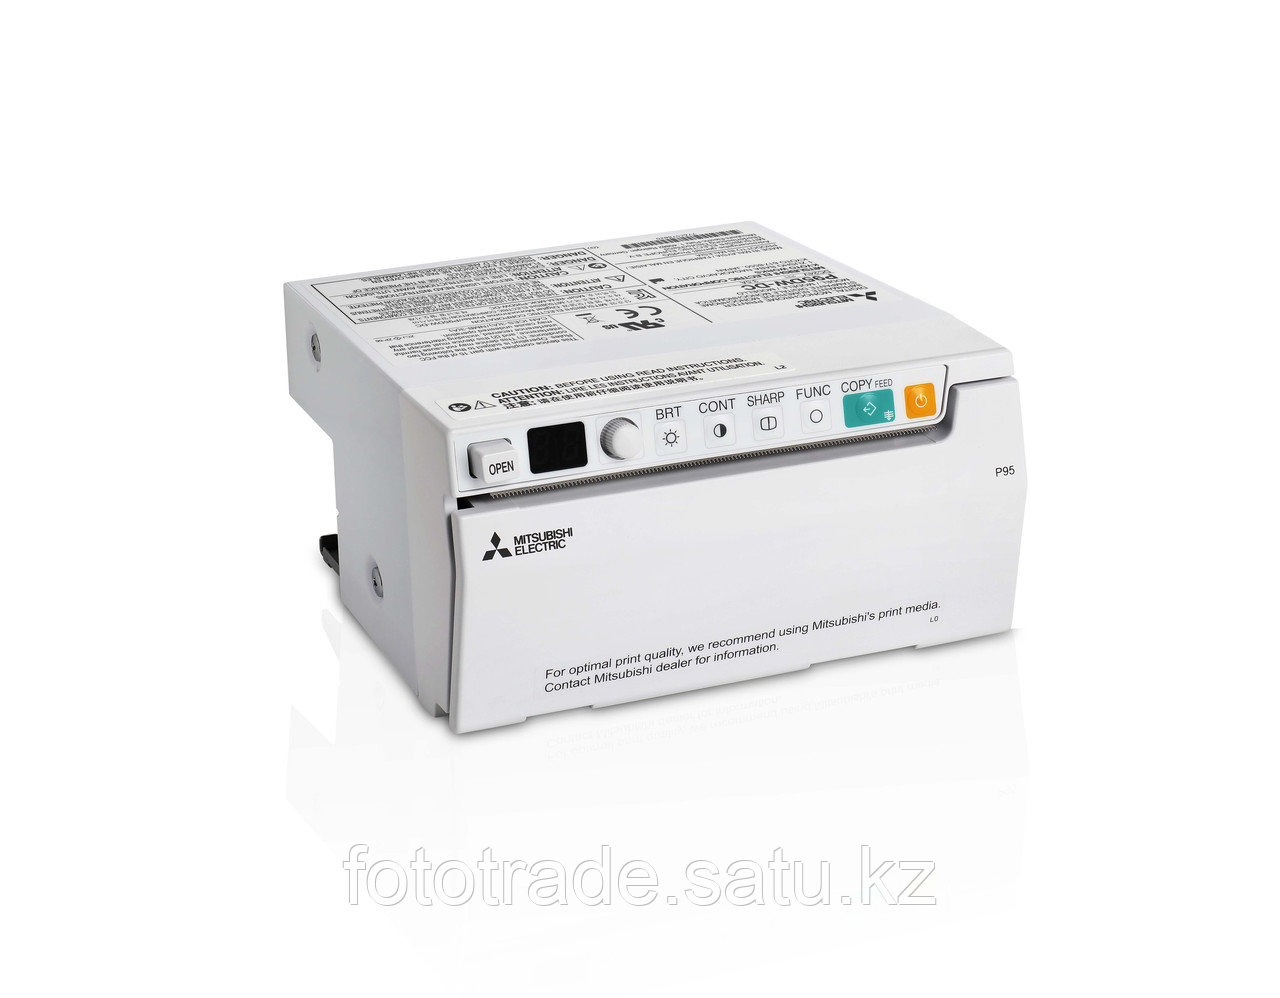 Mitsubishi P-95DW Printer New